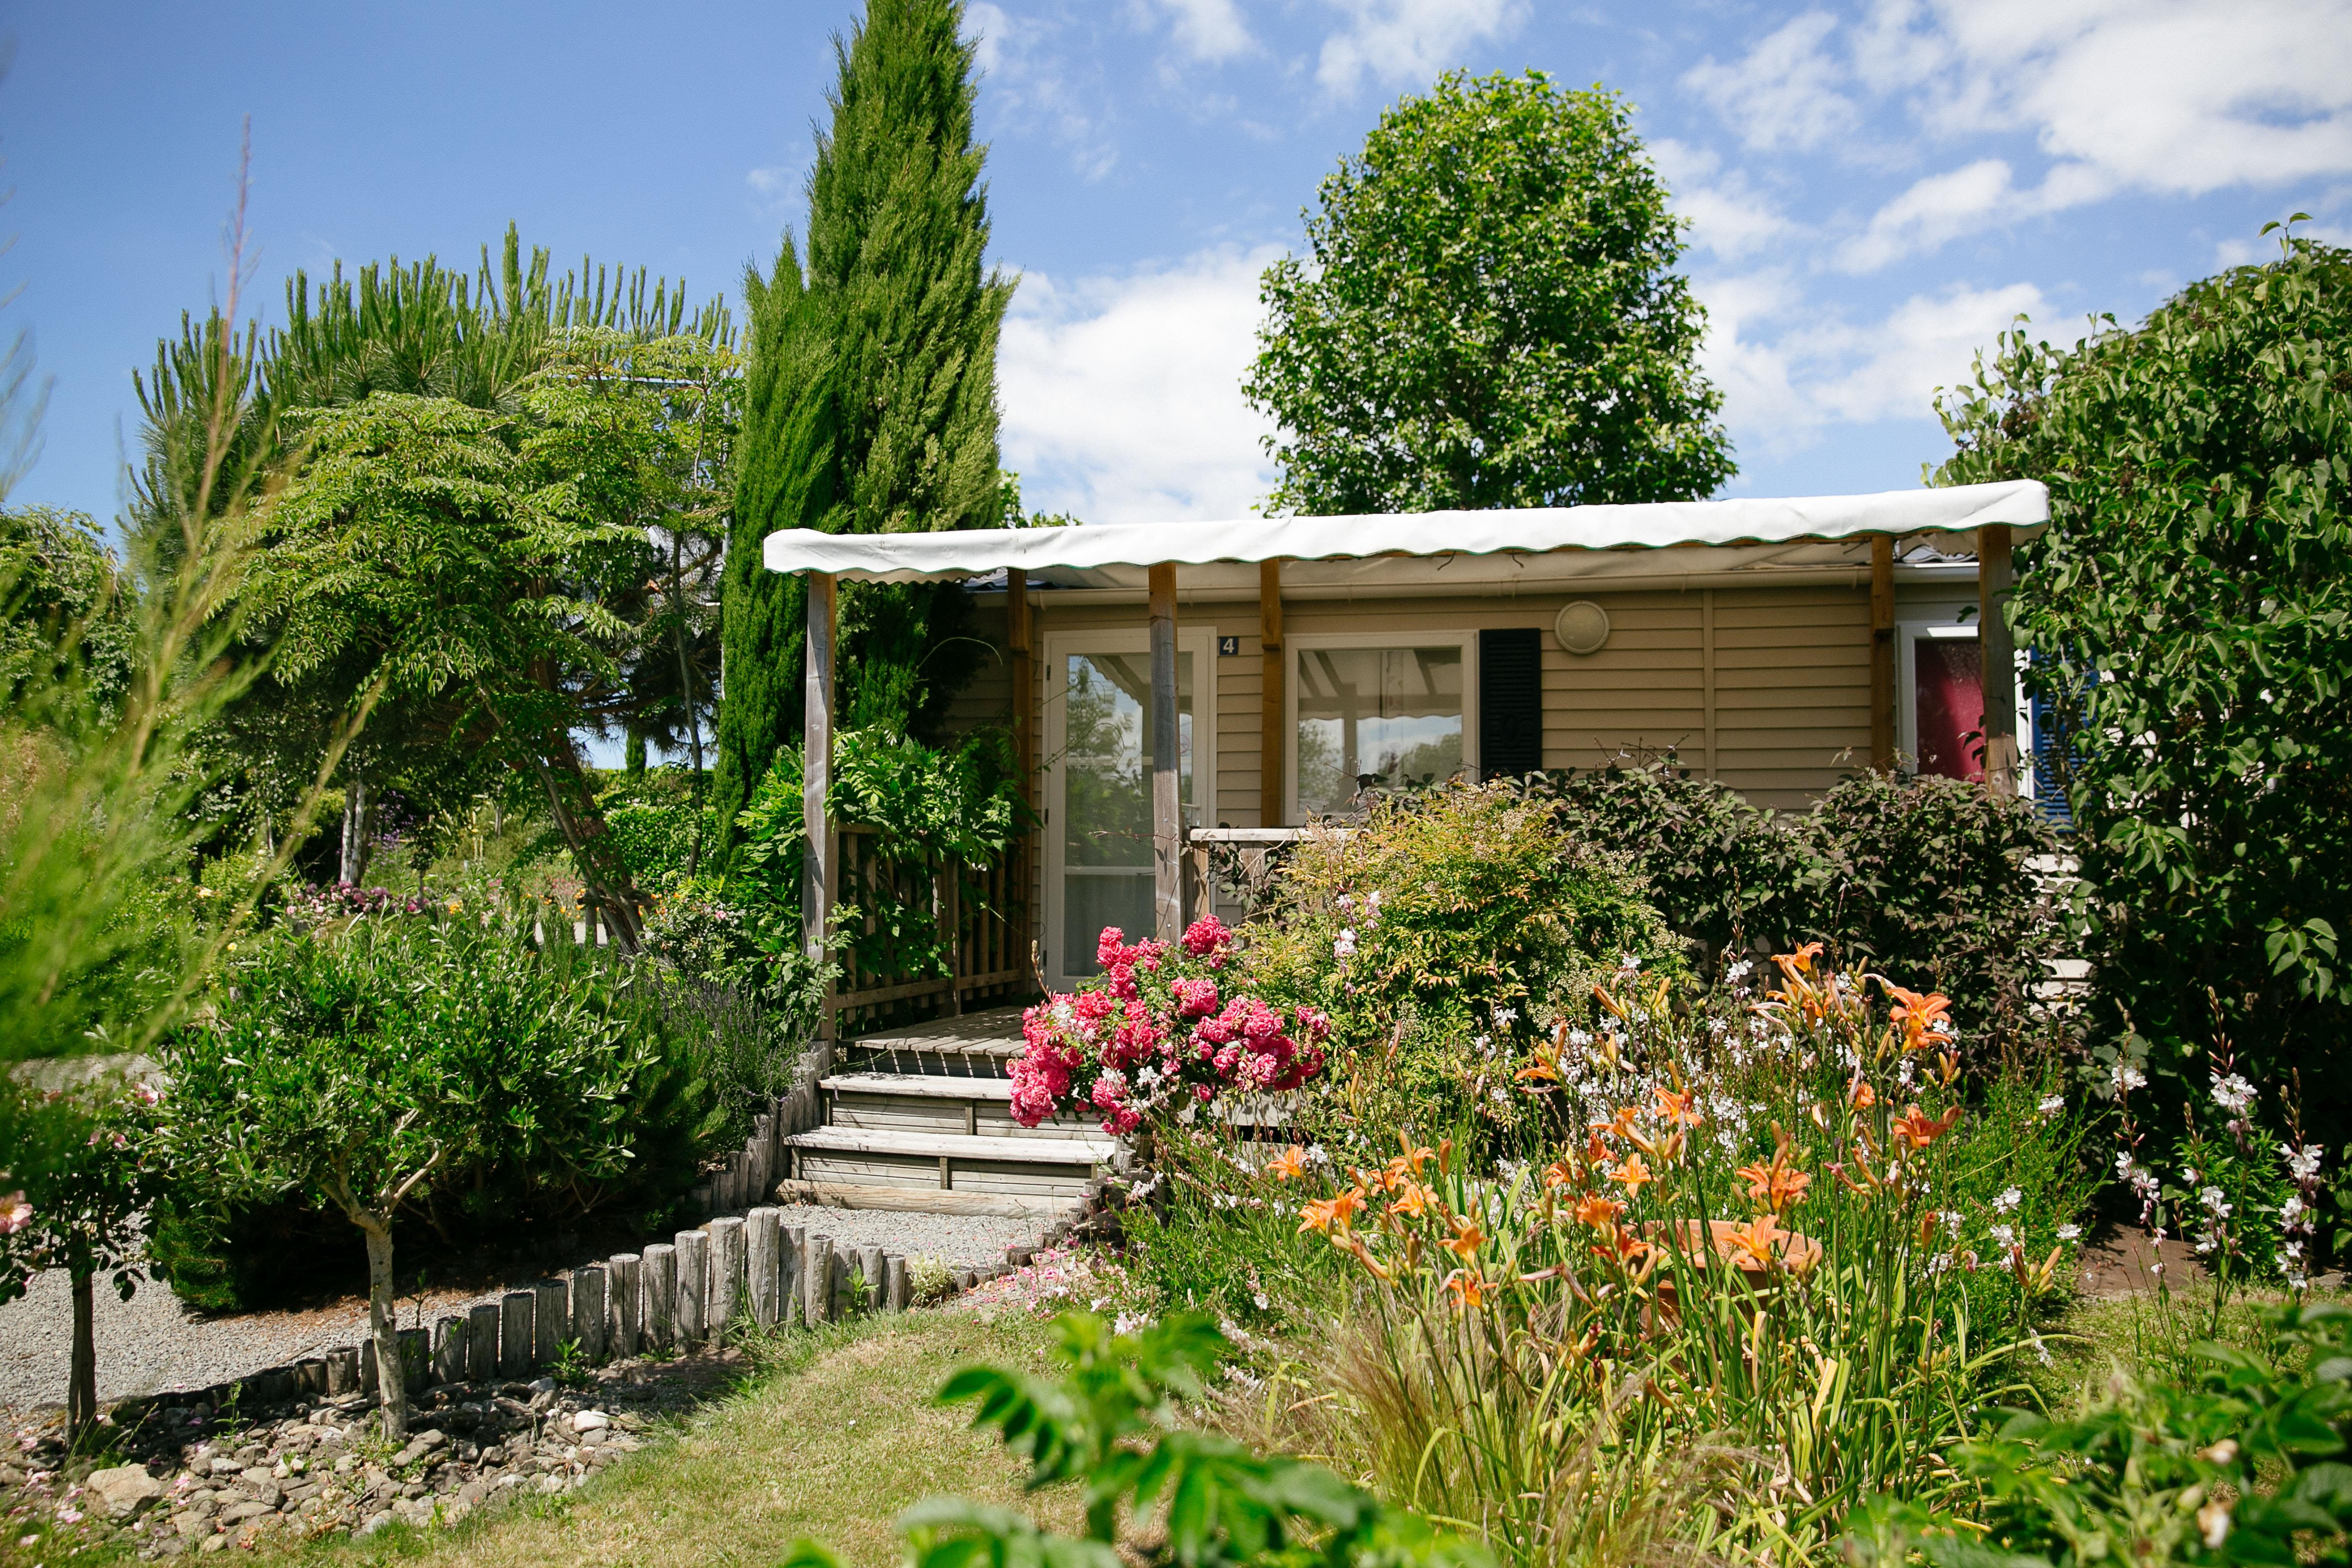 Location - Mobil Home 2 Chambres (28M²) - Tv Terrasse - Camping Saint-Michel